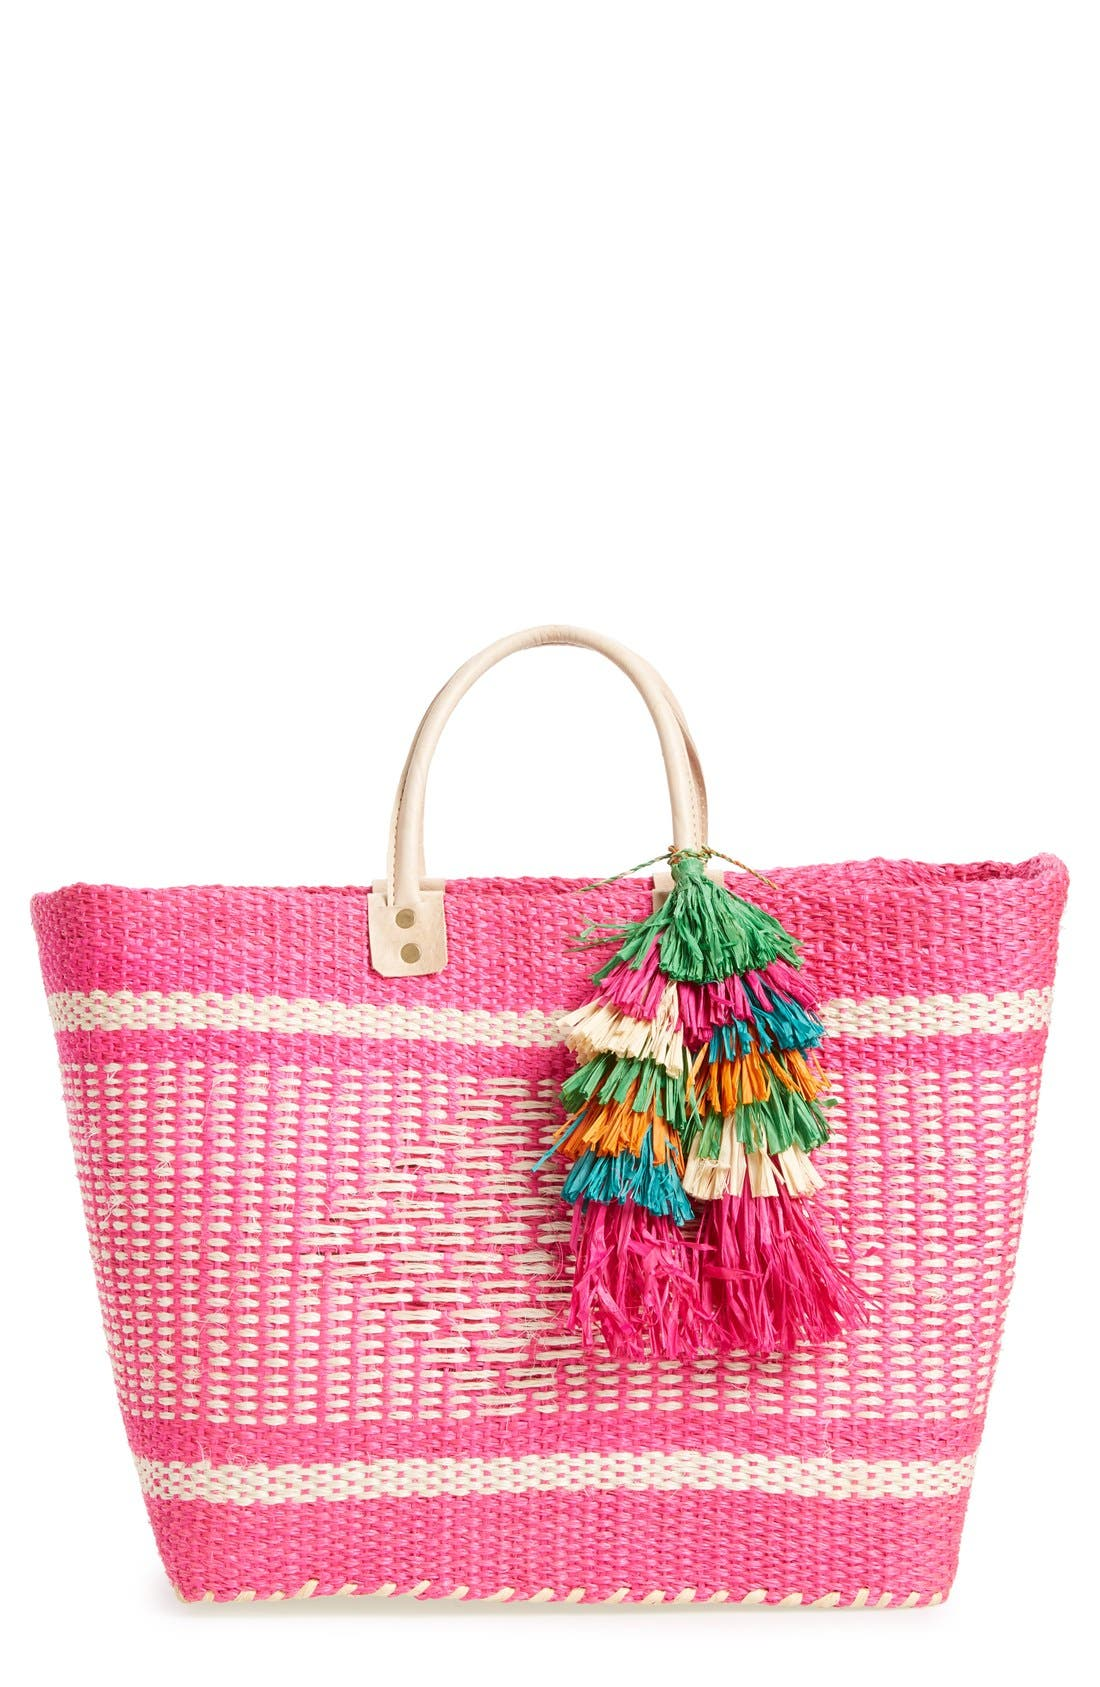 'Ibiza' Woven Tote with Tassel Charms,                         Main,                         color, Pink